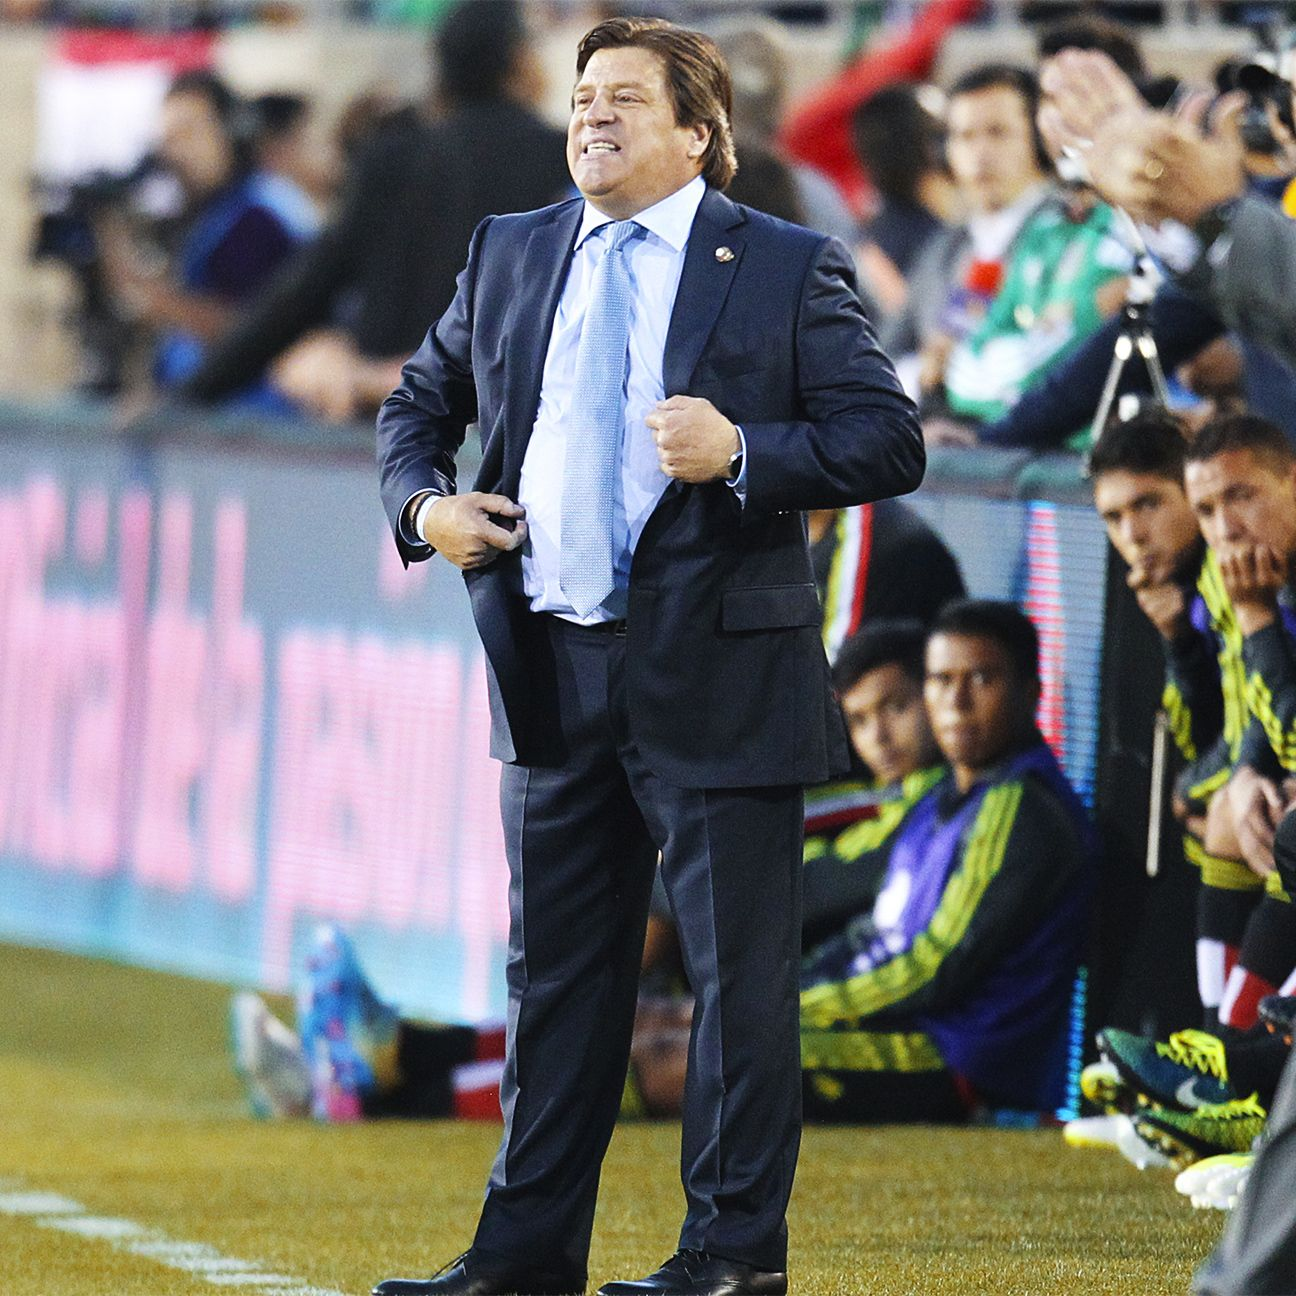 Miguel Herrera's charisma will be hard for any new Mexico coach to match.